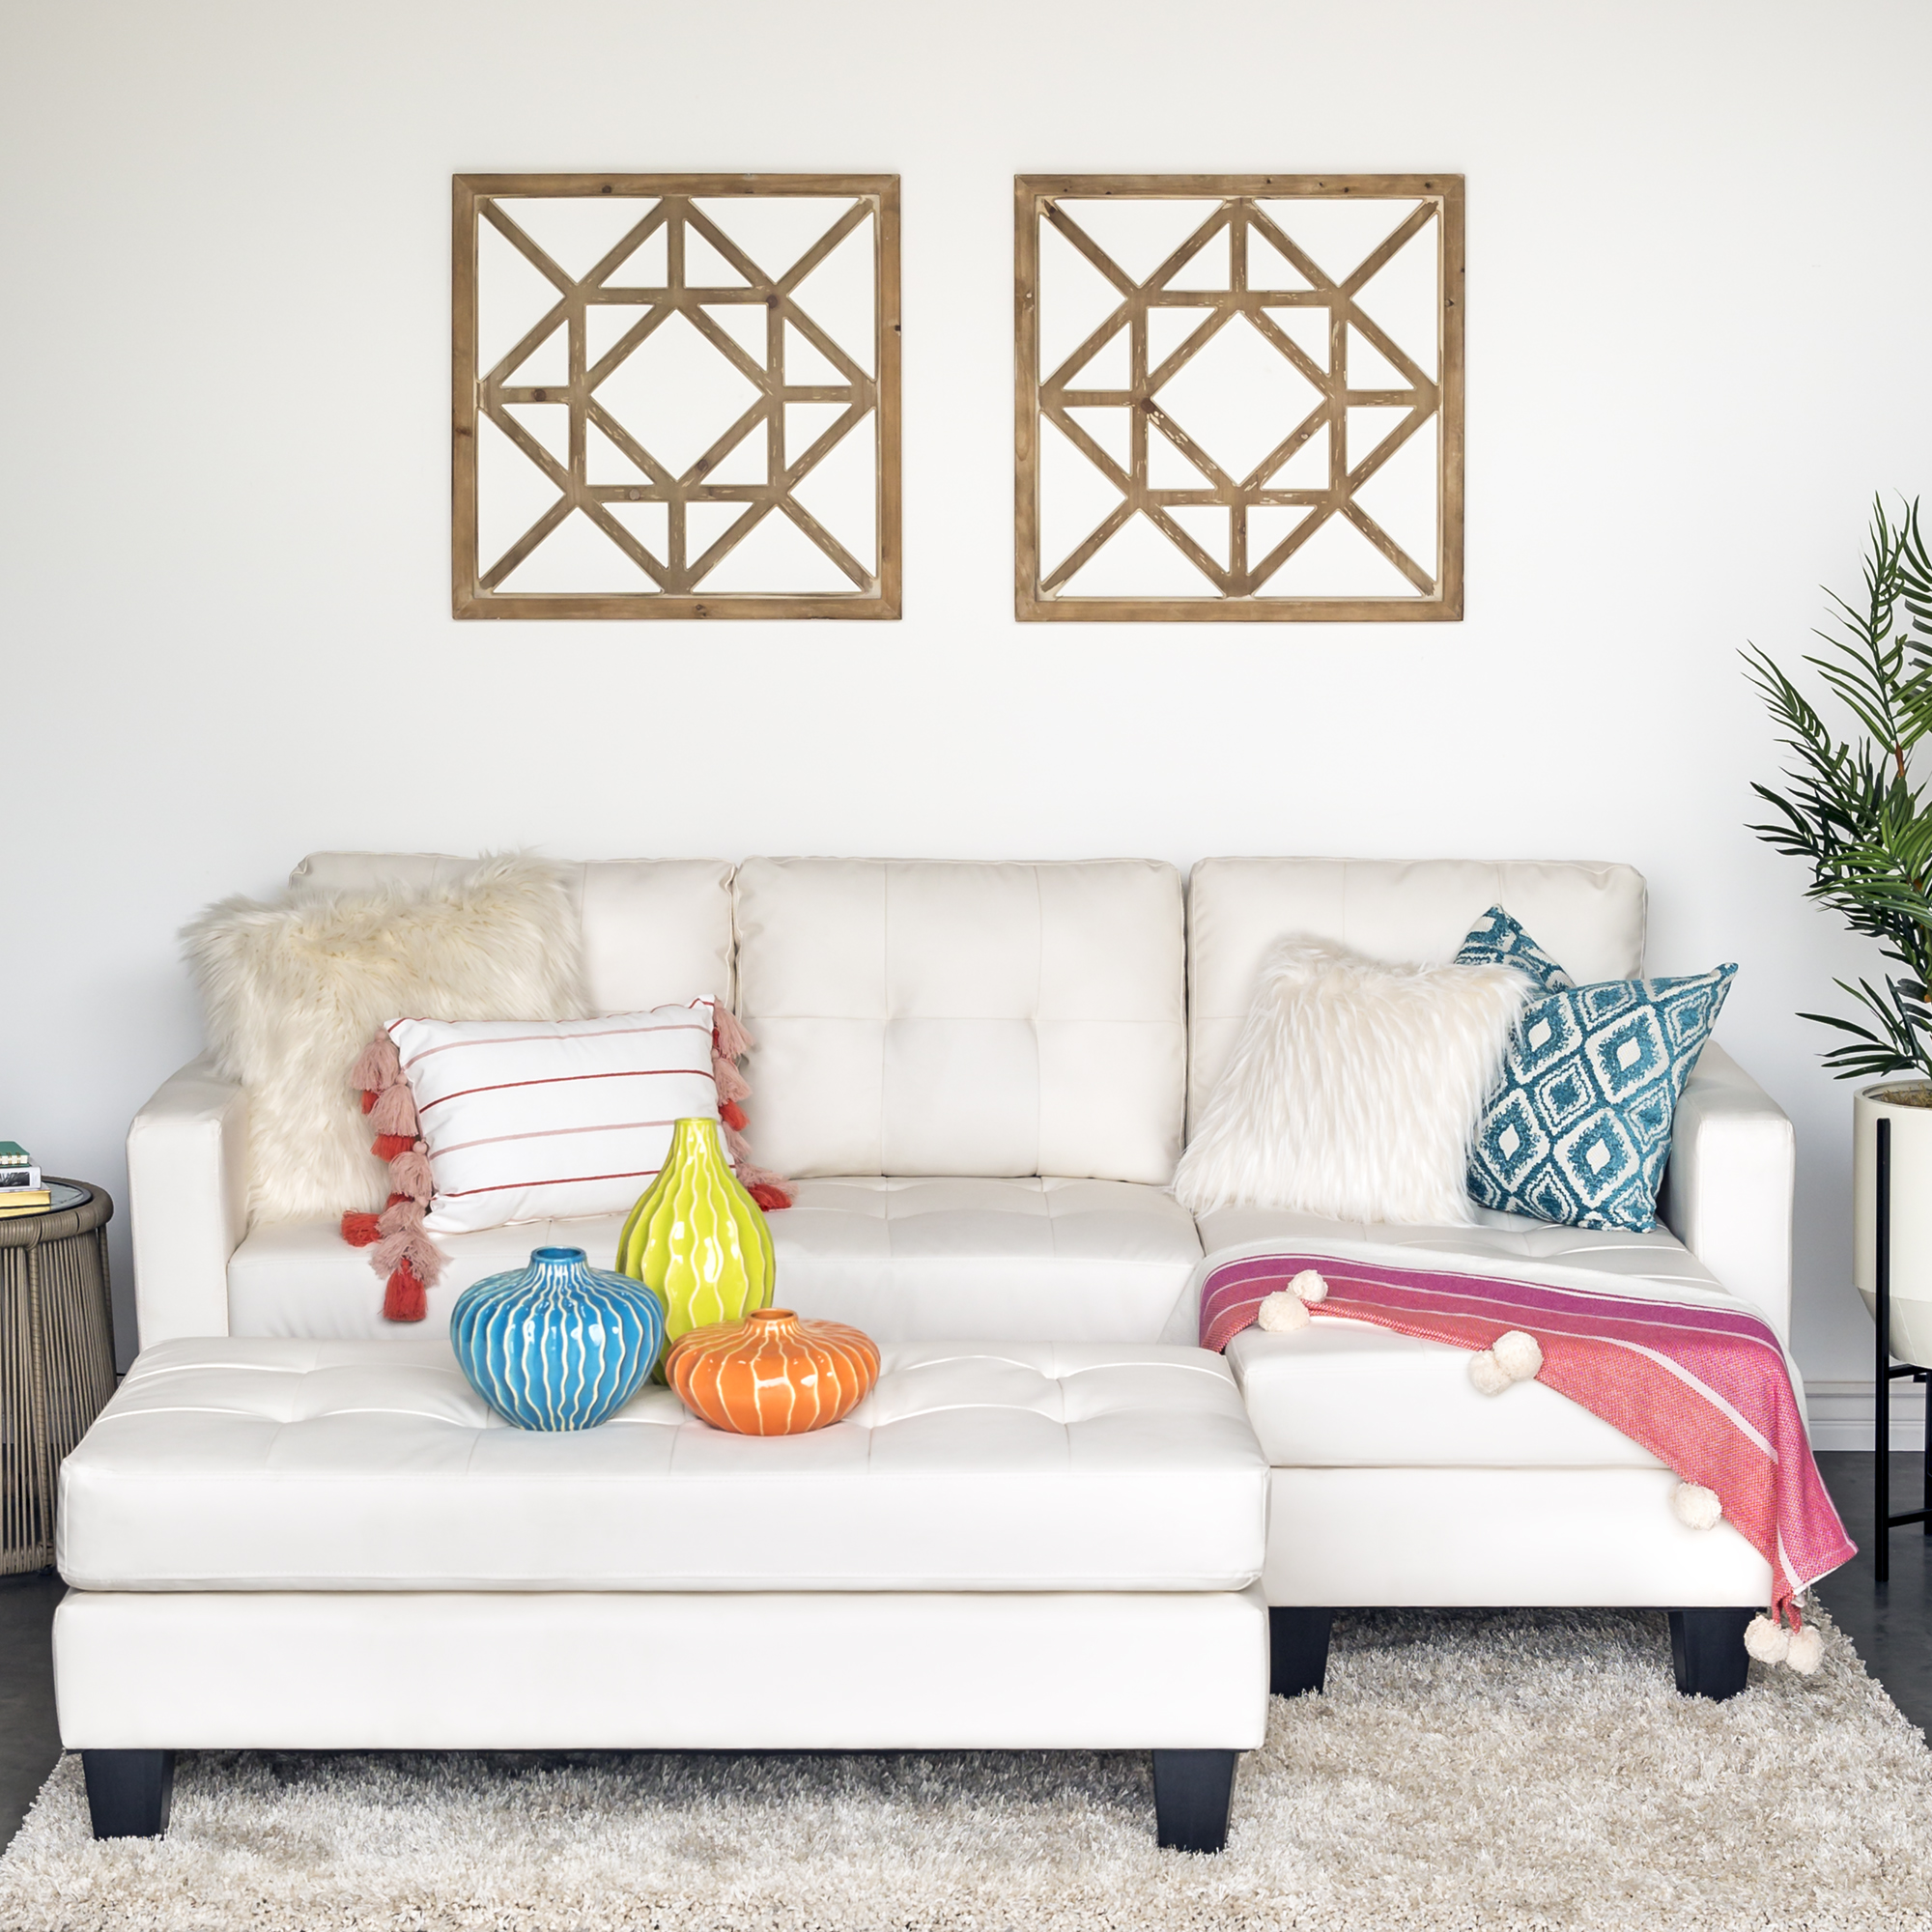 Tufted Leather Sofa Bed: White Tufted Leather Sectional Sofa Couch W/ Chaise Lounge